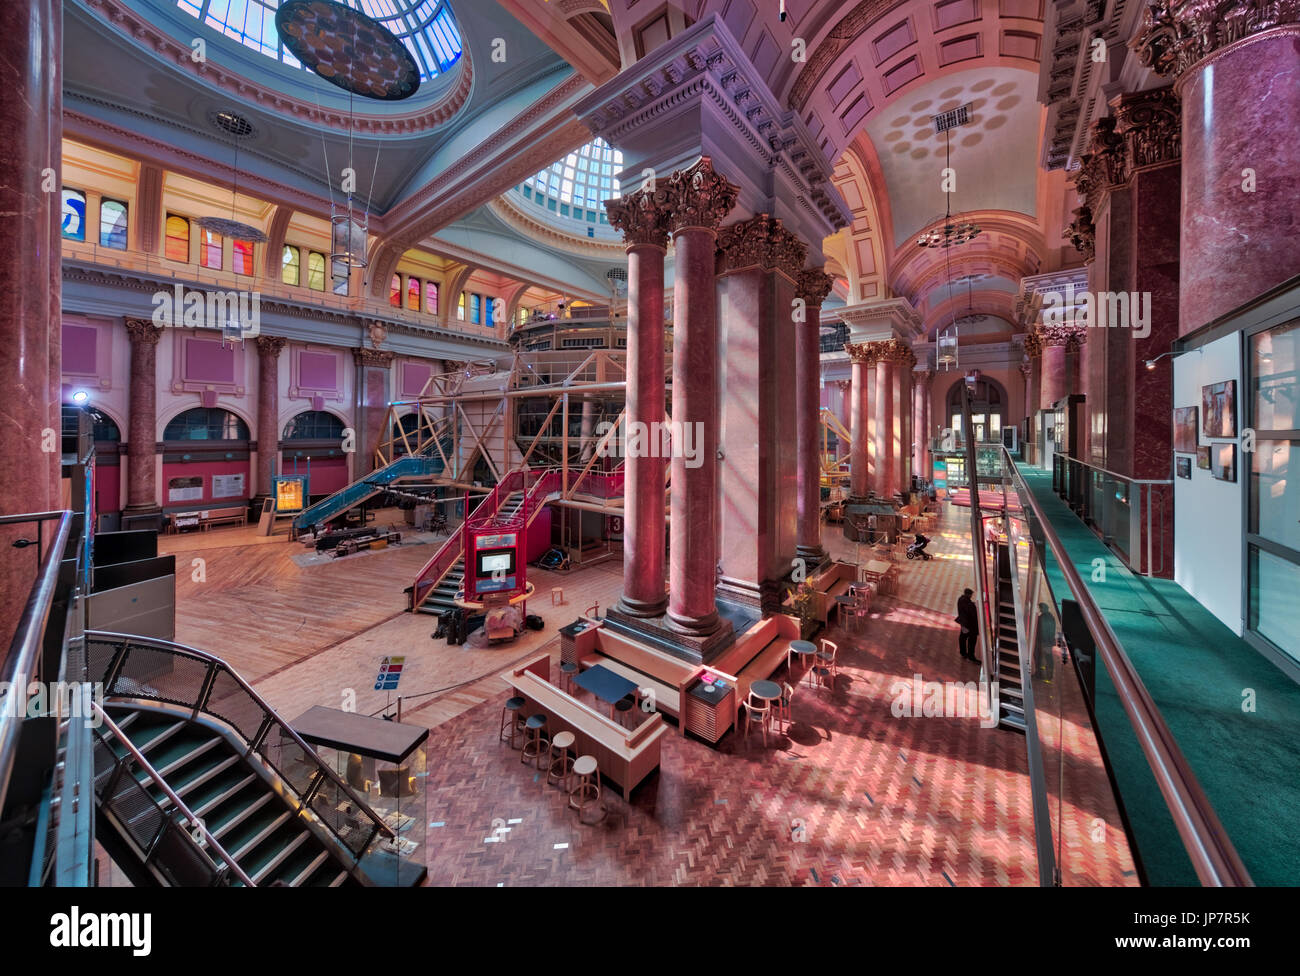 """Interior of the Royal Exchange in Manchester, featuring the """"theatre in the round"""" Stock Photo"""